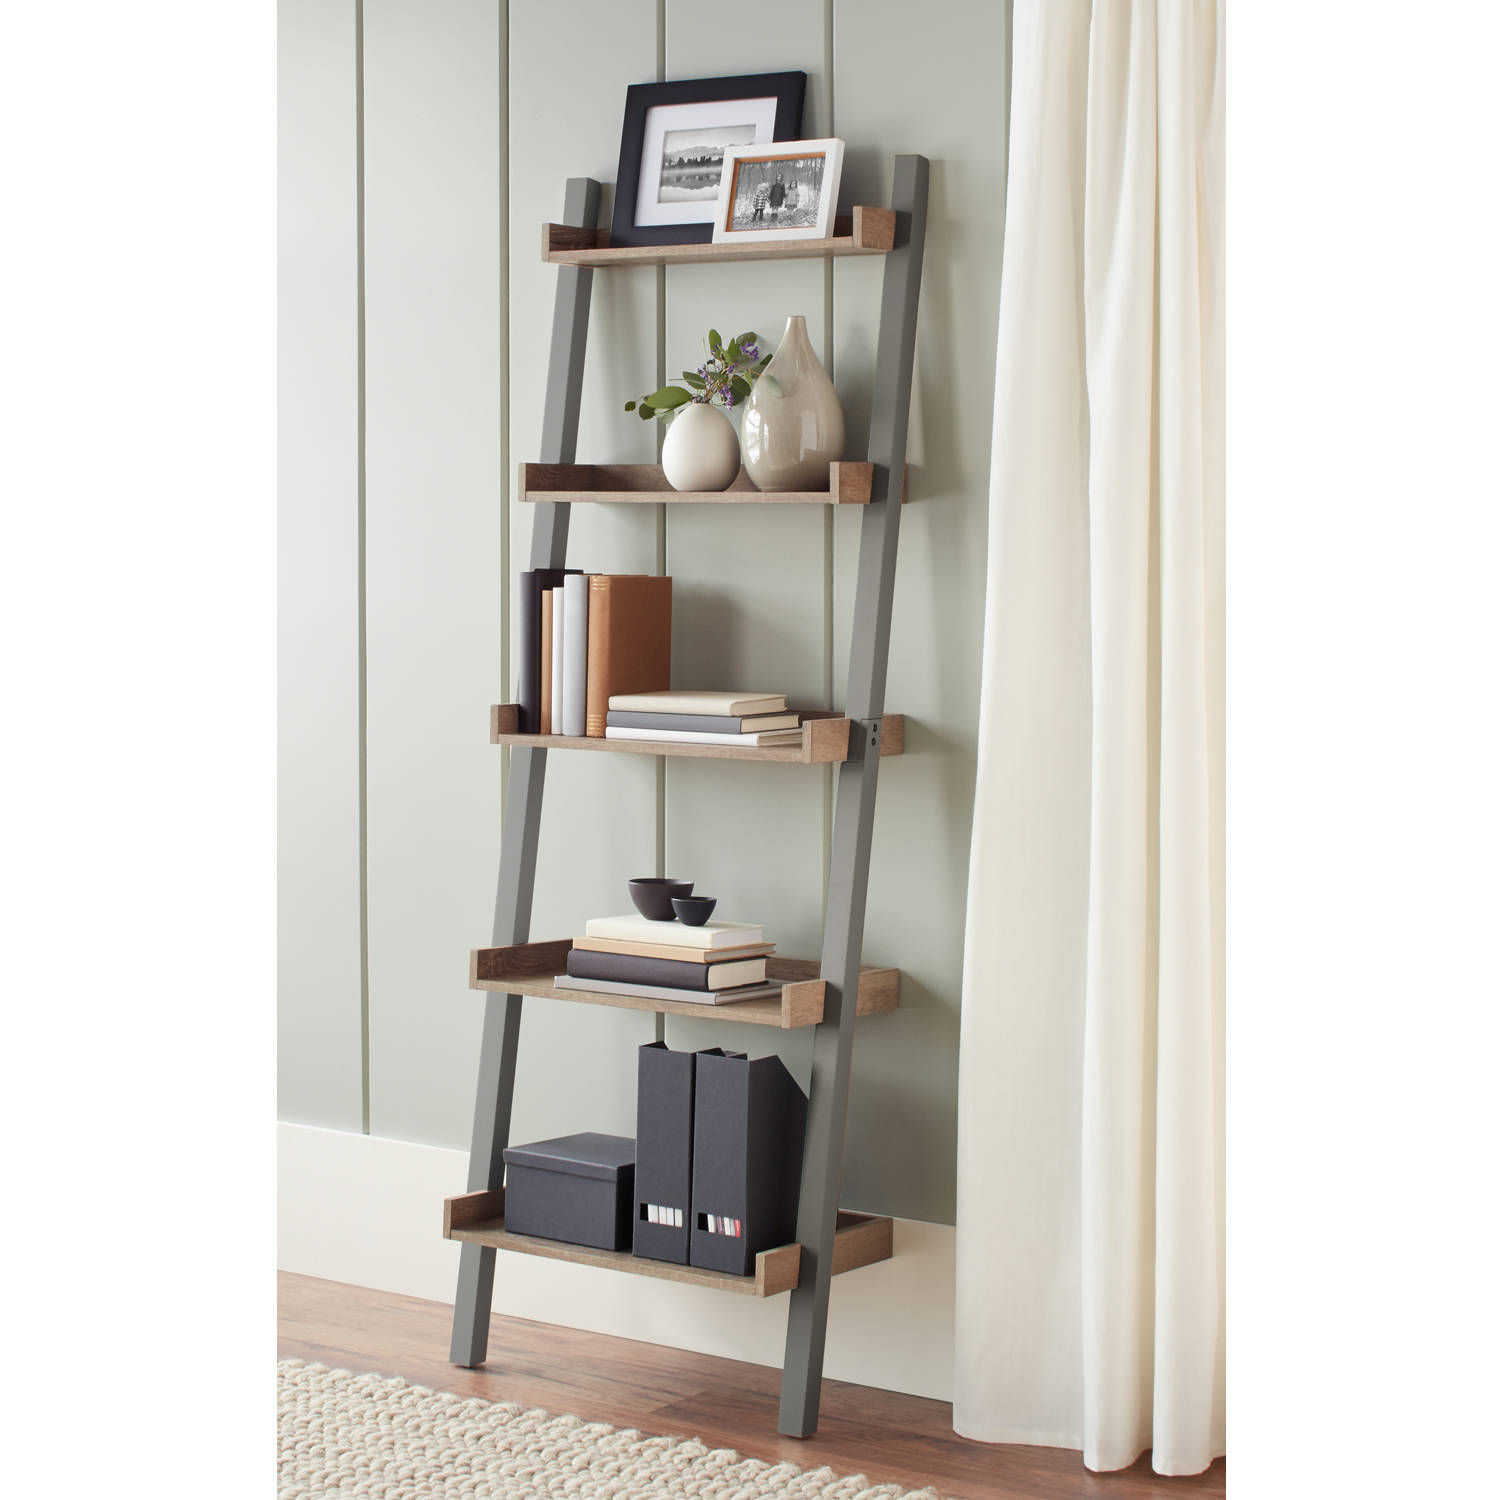 Better homes and gardens bedford 5 shelf leaning bookcase - Better homes and gardens bookshelf ...